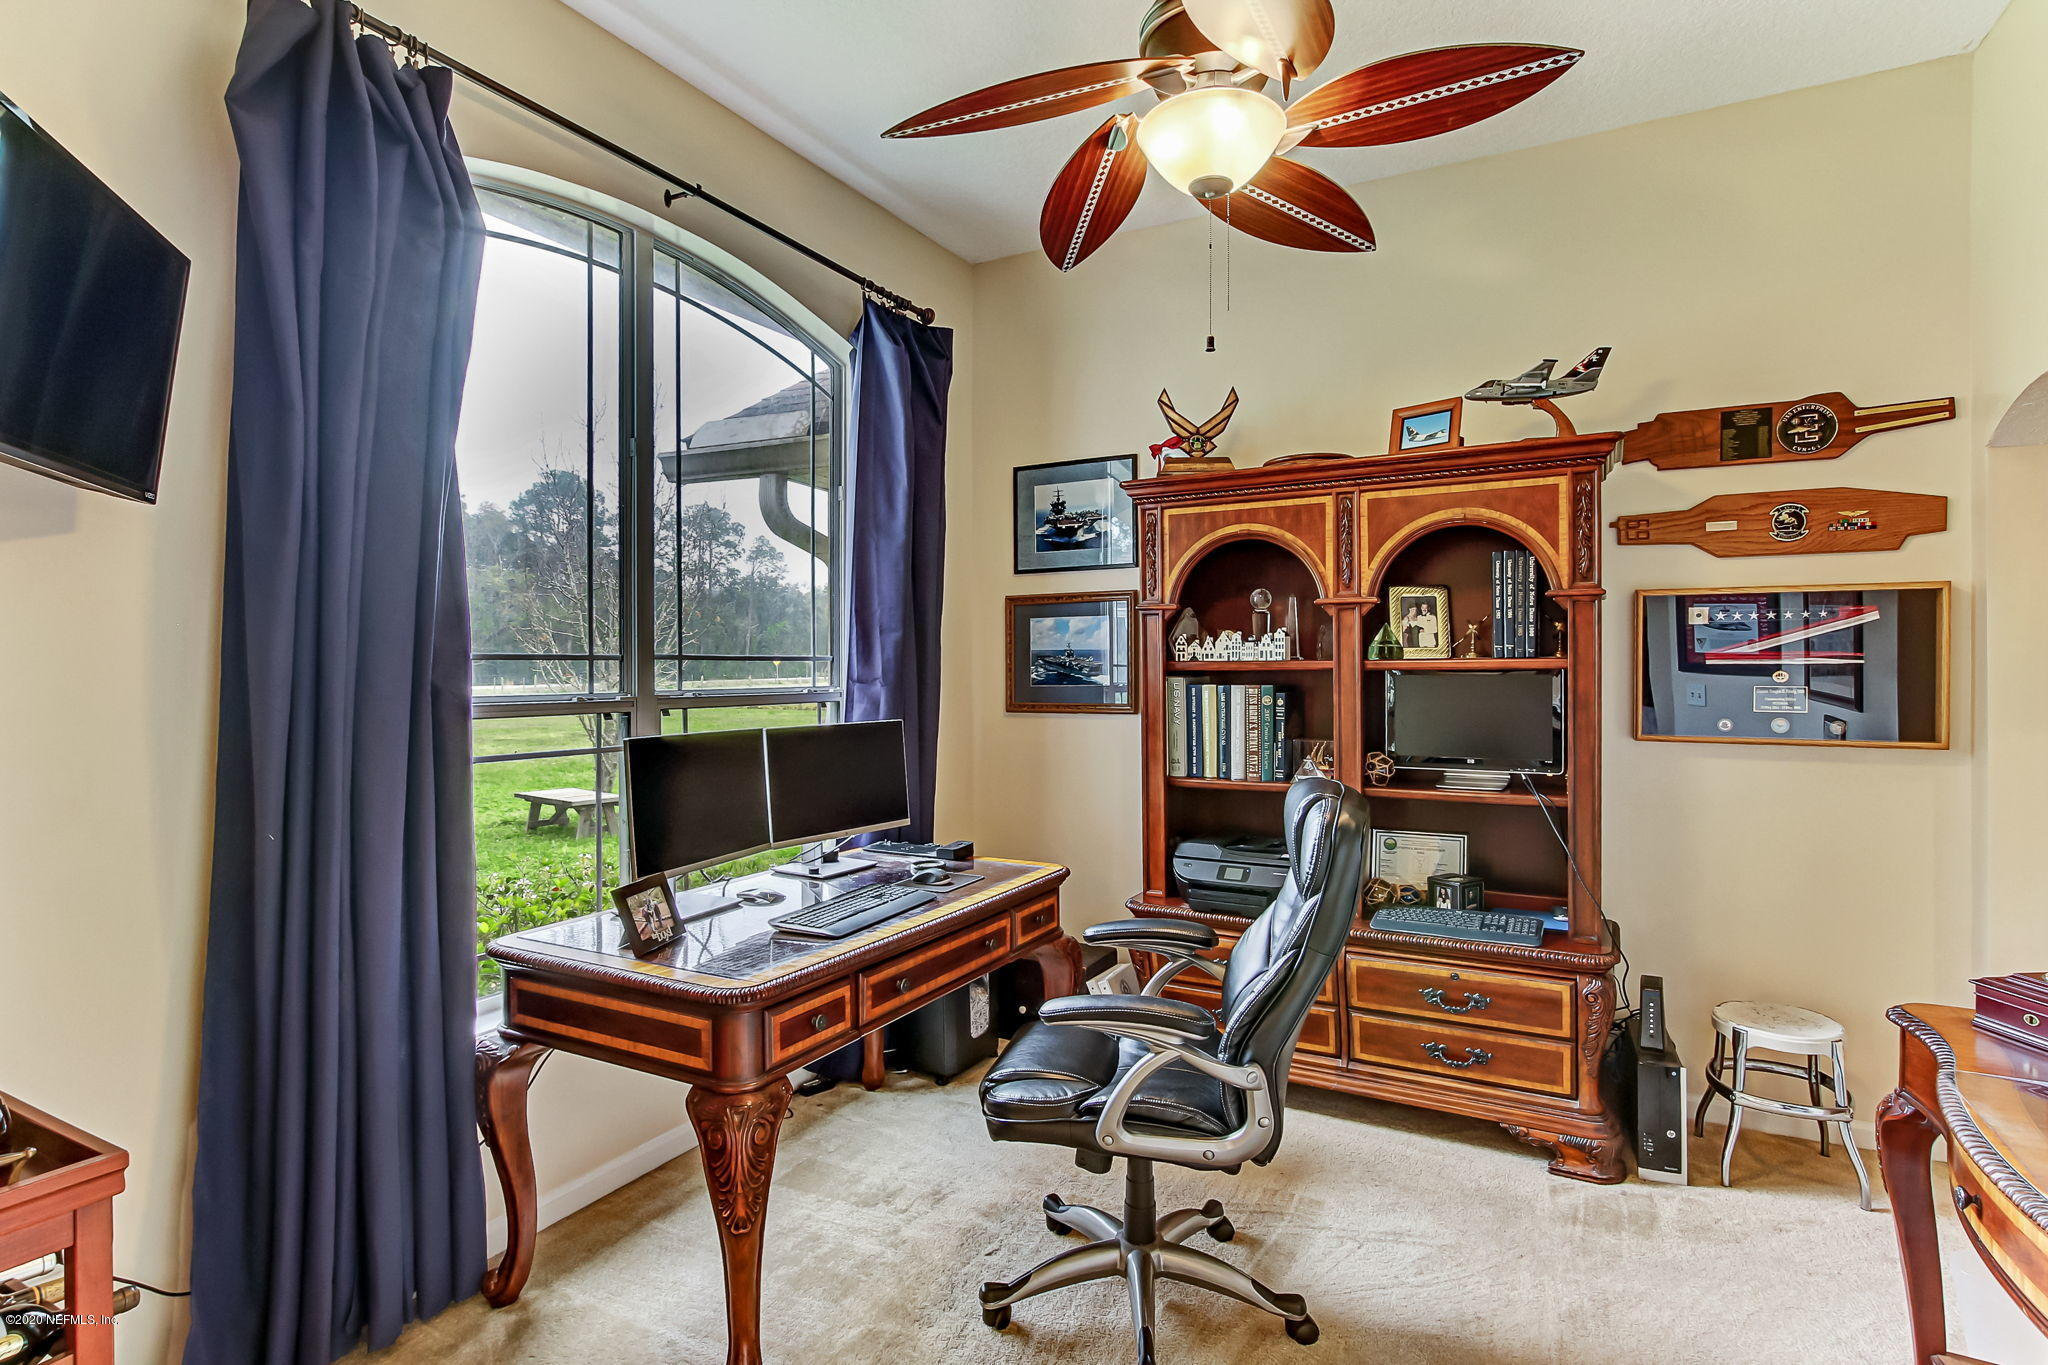 6132 COUNTY RD 209, GREEN COVE SPRINGS, FLORIDA 32043, 3 Bedrooms Bedrooms, ,2 BathroomsBathrooms,Residential,For sale,COUNTY RD 209,1039816